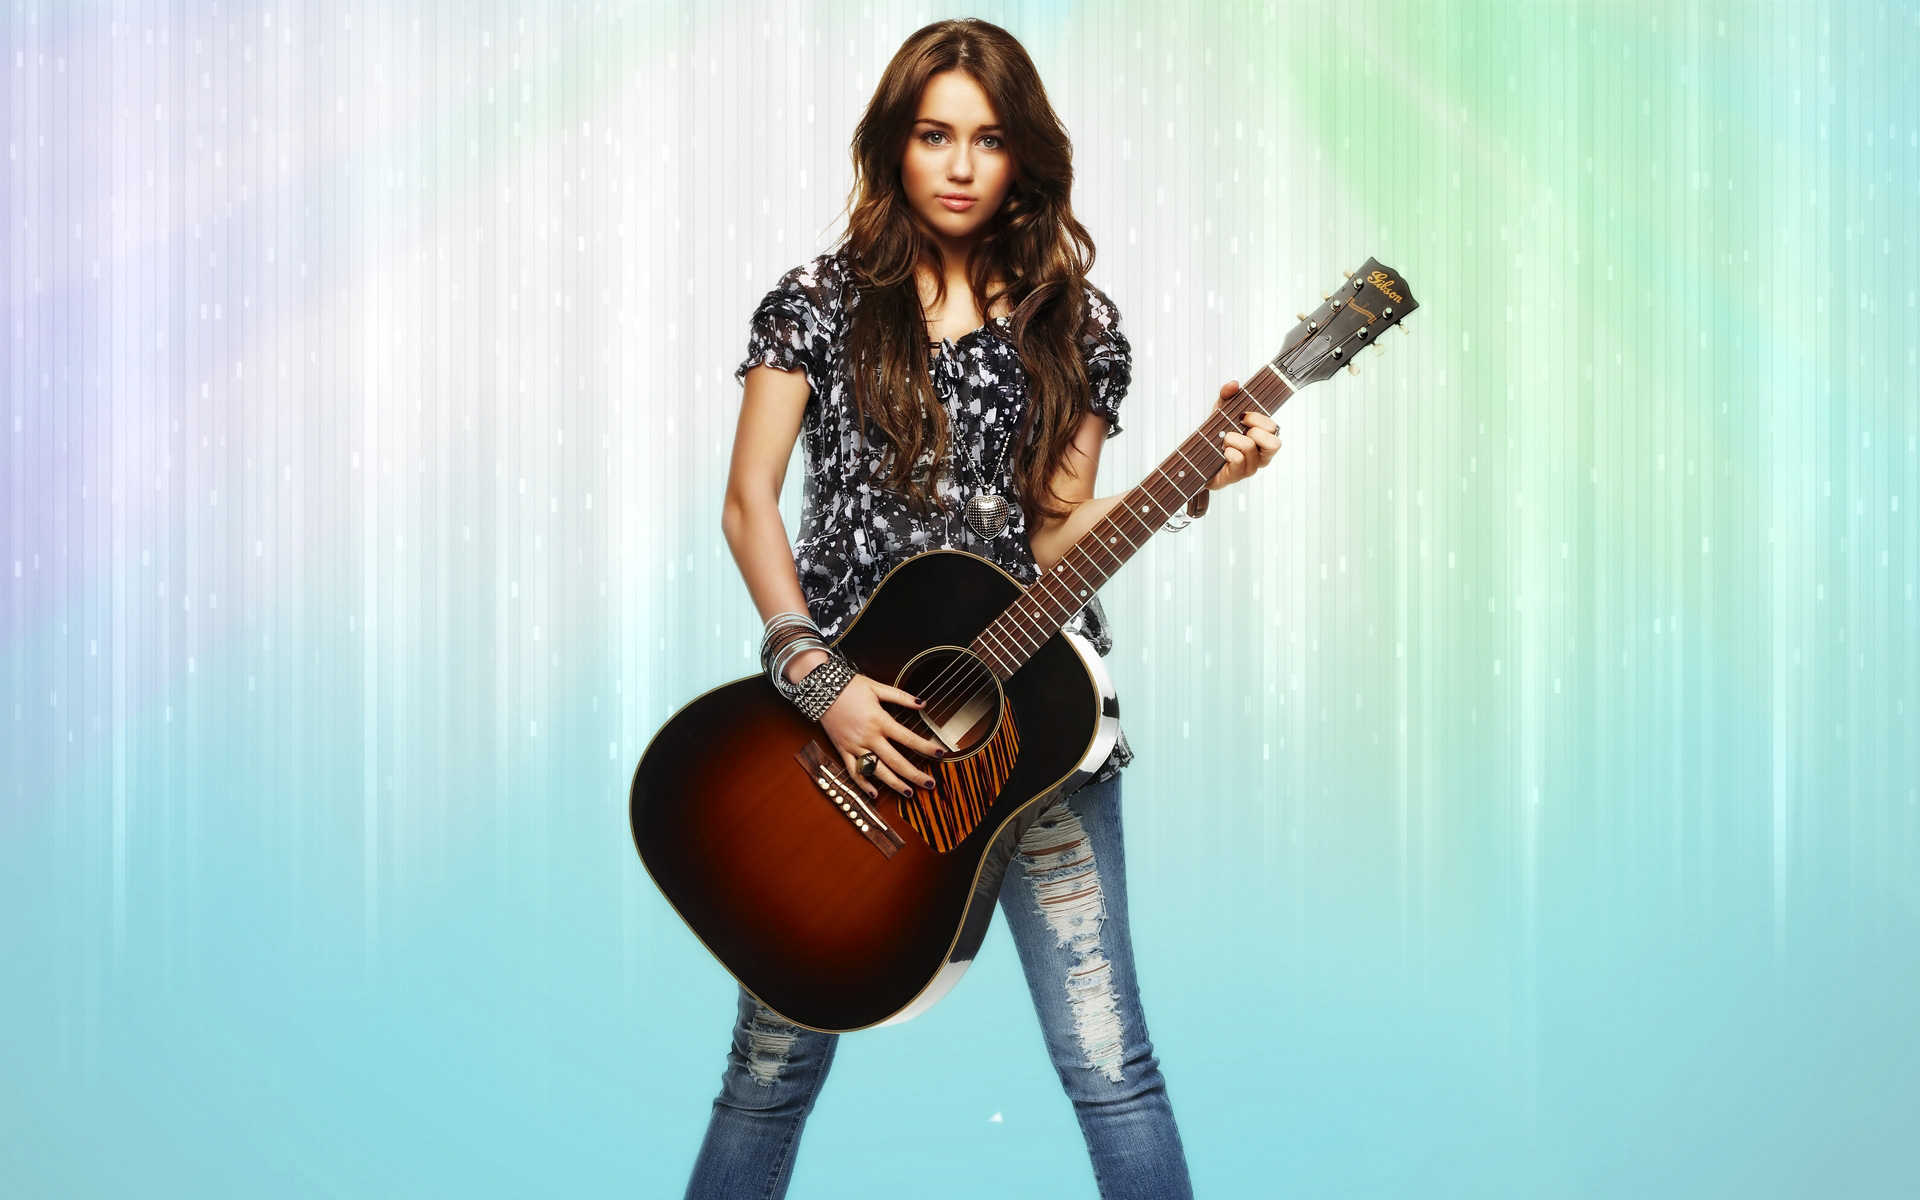 Miley Cyrus & Guitor 271.31 Kb